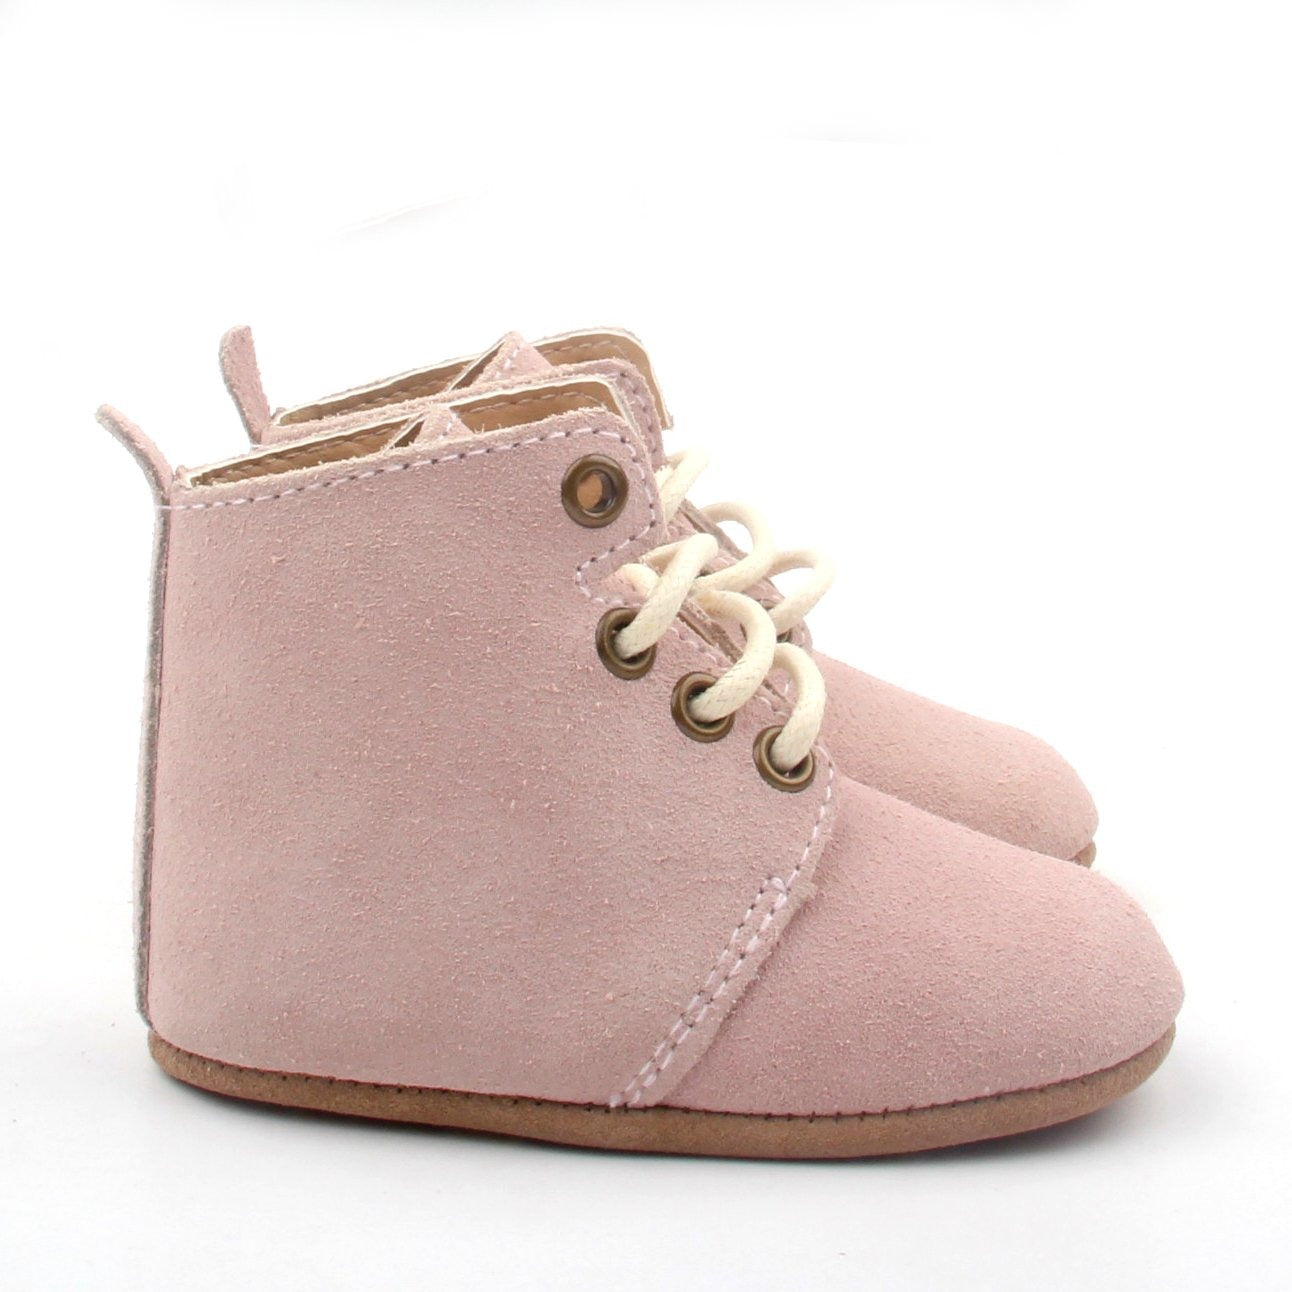 Wynter Dusty Pink Suede Boots